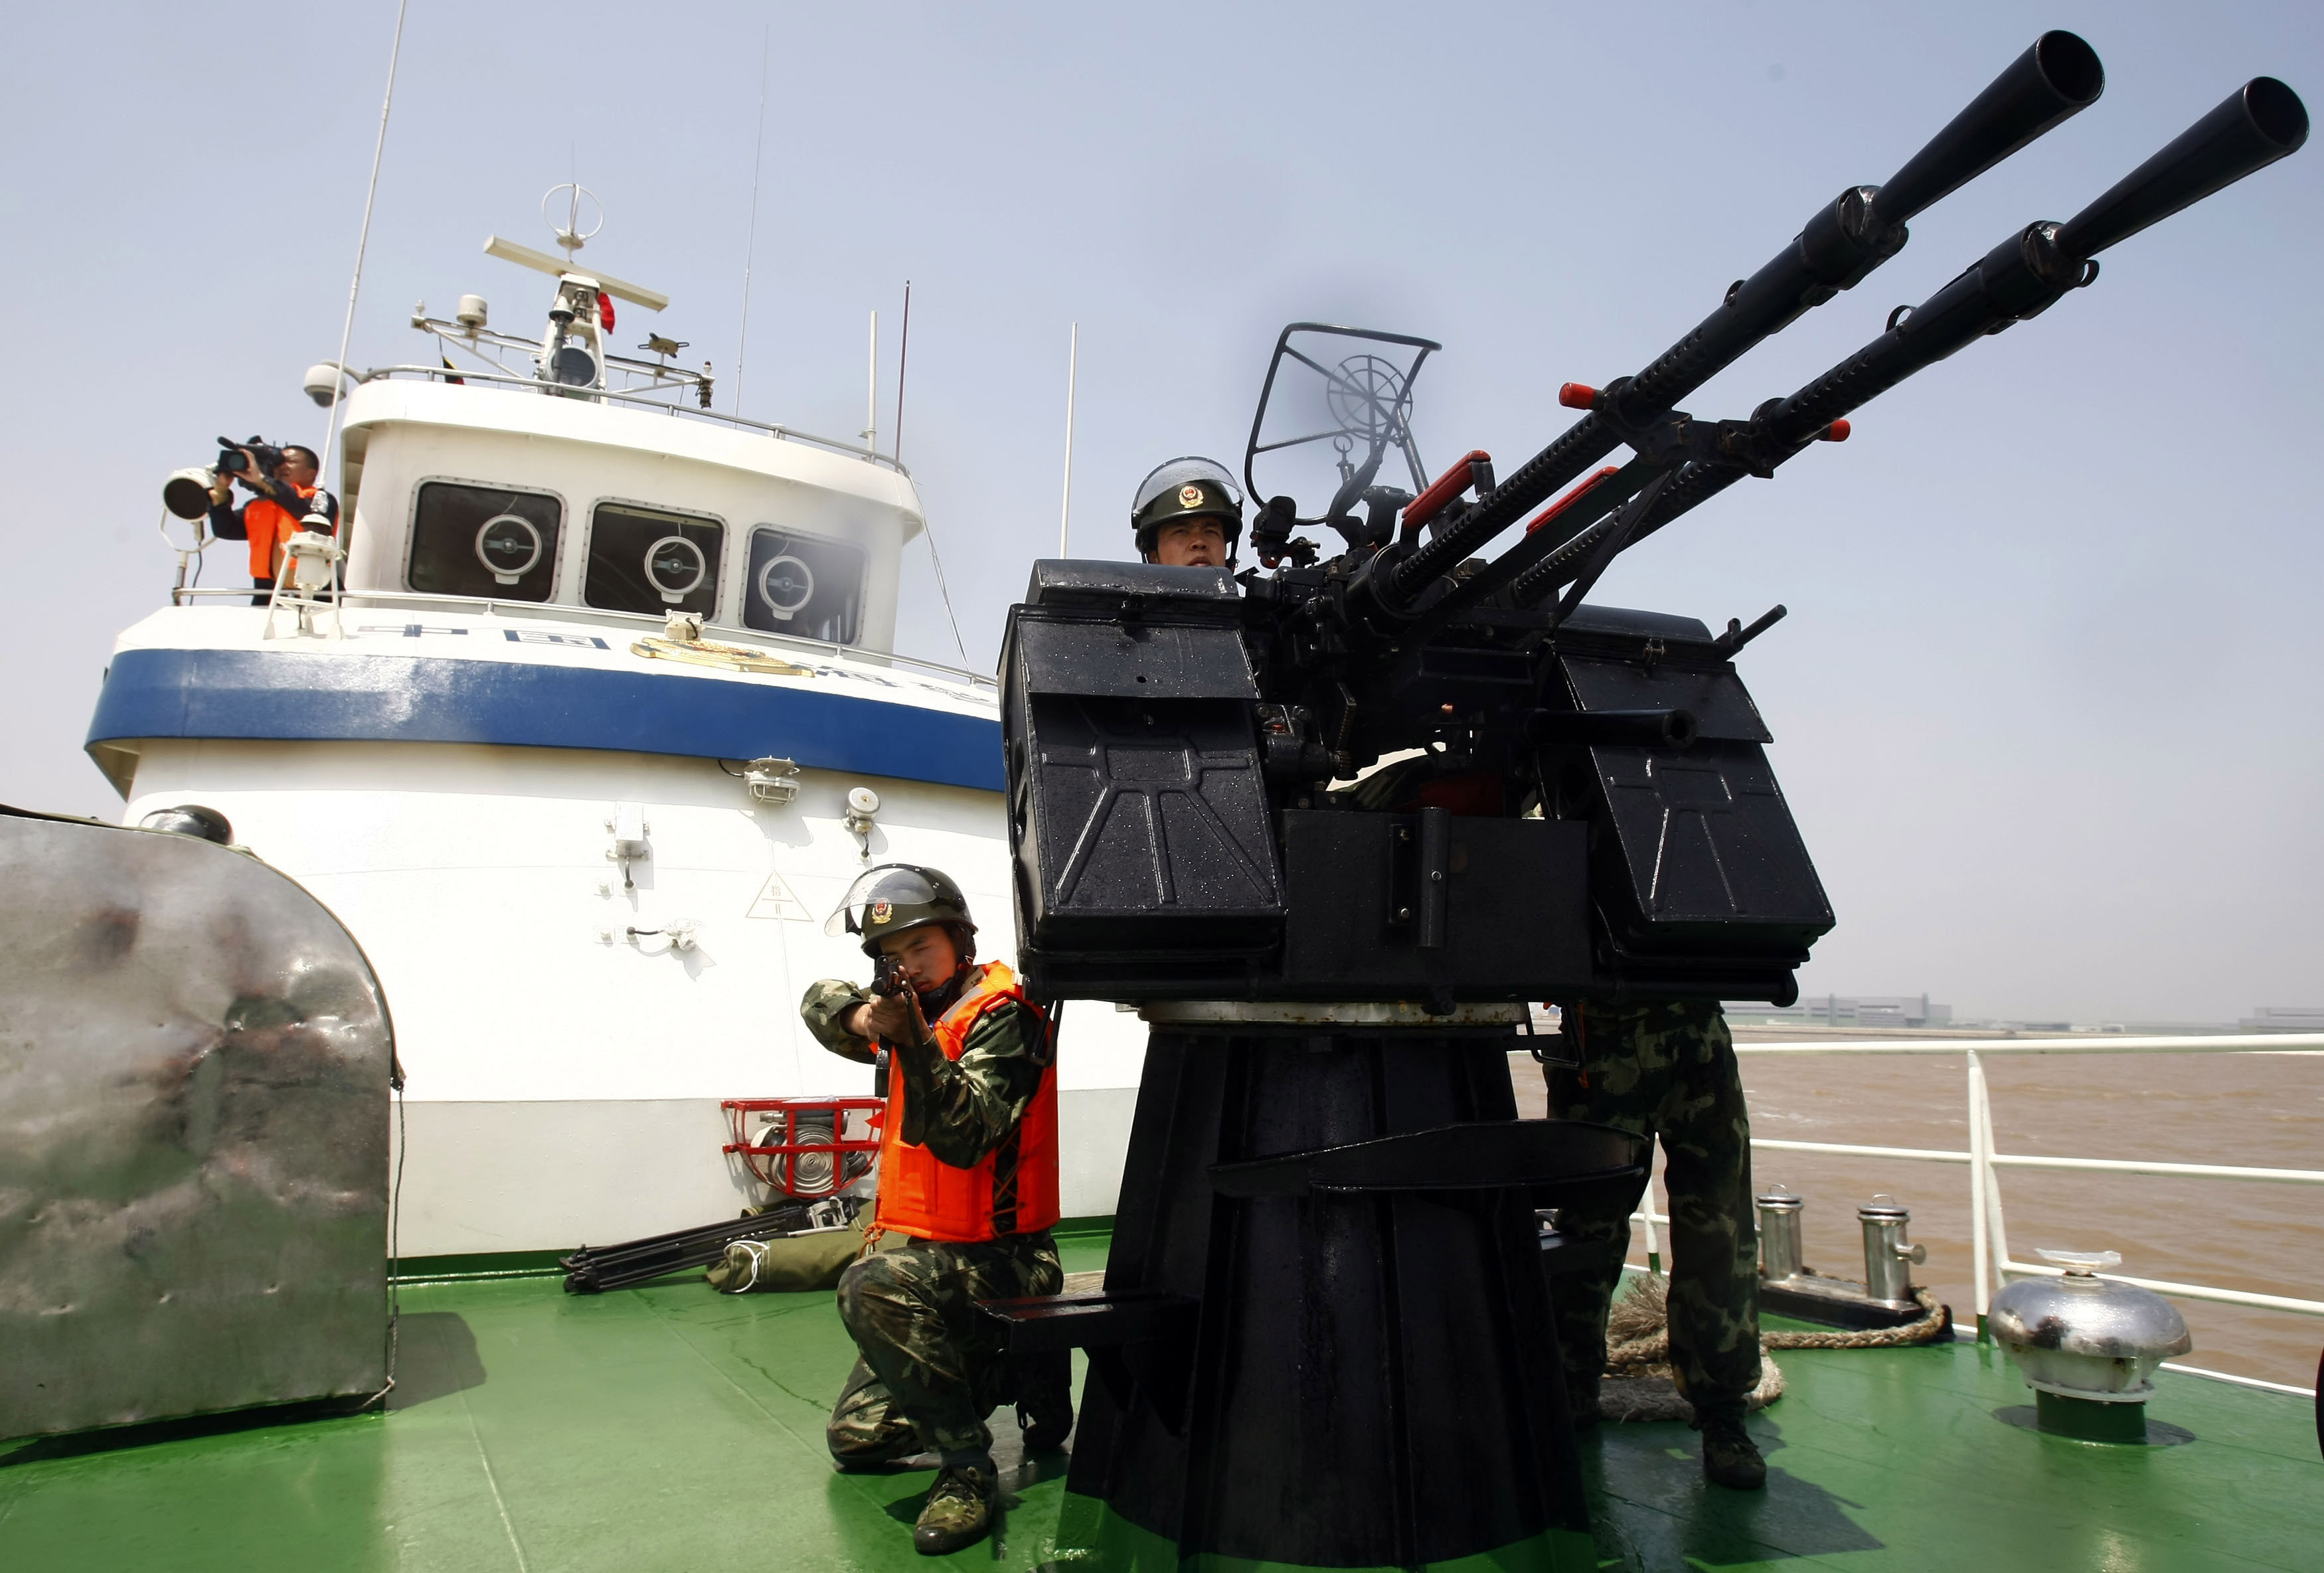 Security Drills Held In Preperation For Shanghai Expo